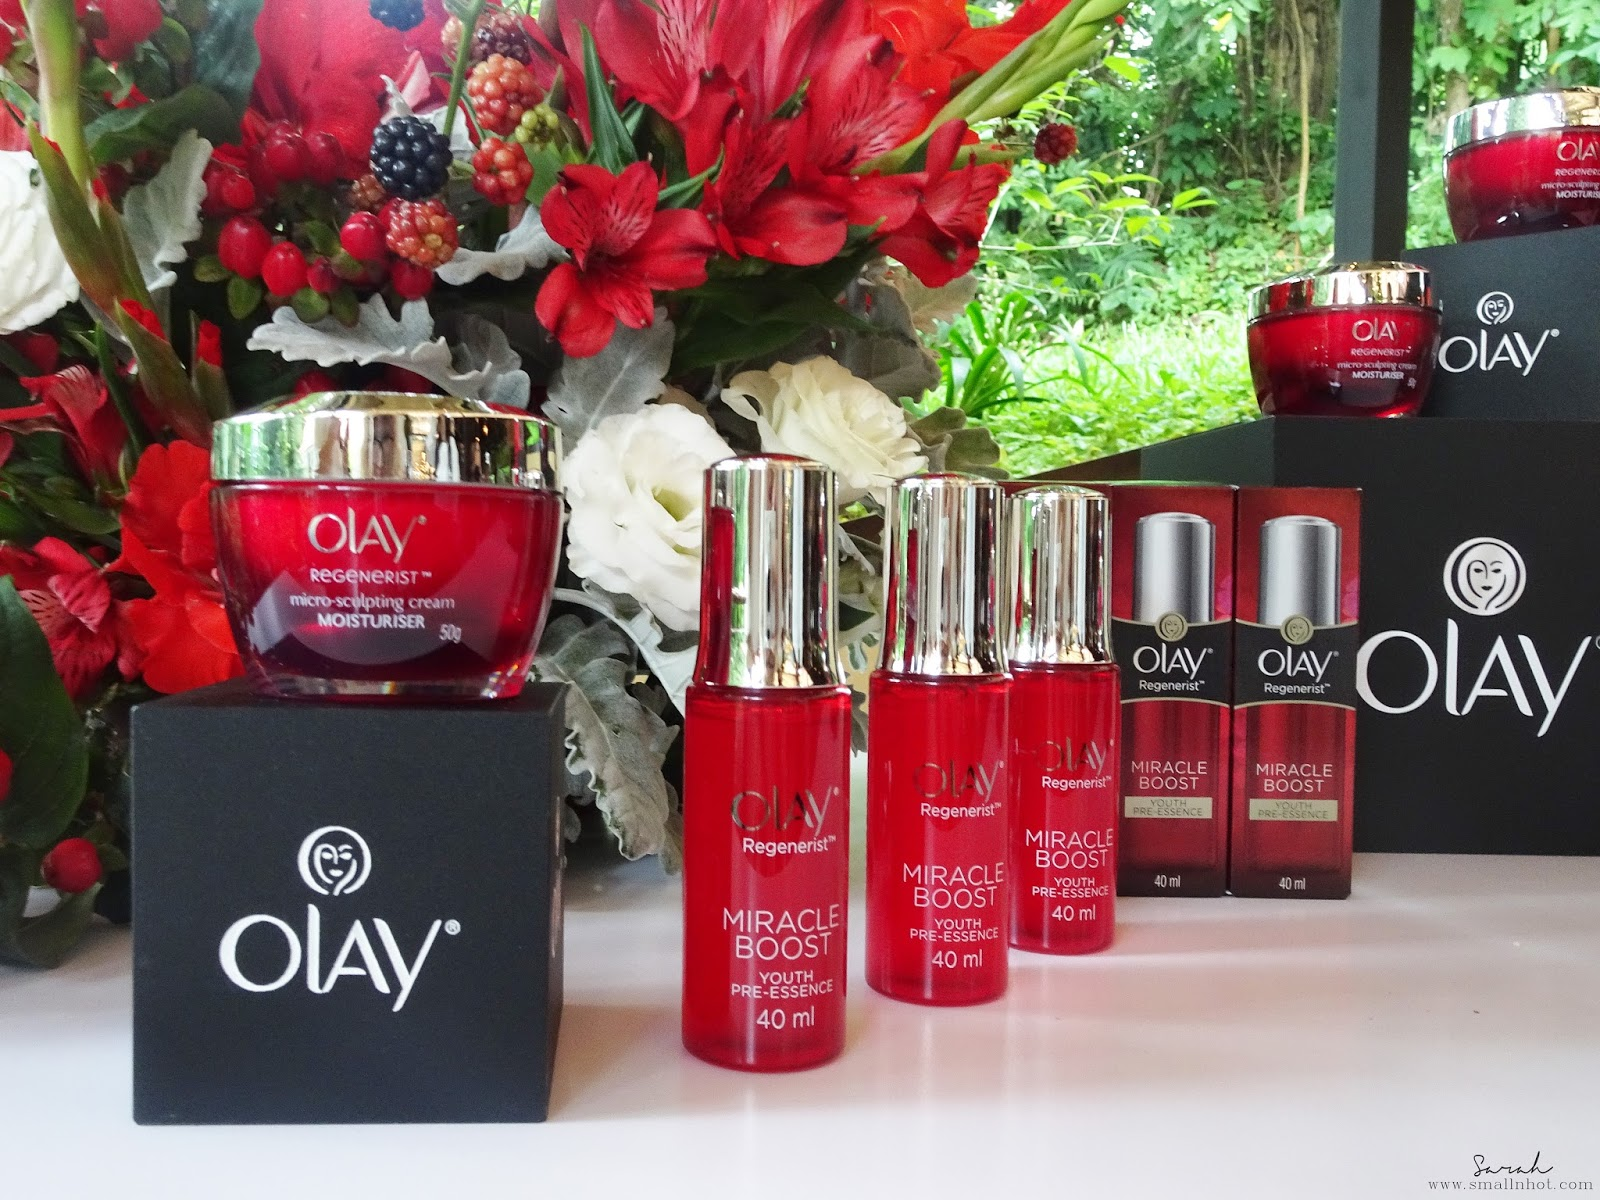 OLAY REGENERIST MIRACLE BOOST YOUTH PRE-ESSENCE product review; OLAY REGENERIST MIRACLE BOOST YOUTH PRE-ESSENCE product launch; OLAY REGENERIST MIRACLE BOOST YOUTH PRE-ESSENCE review; OLAY REGENERIST MIRACLE BOOST YOUTH PRE-ESSENCE swatches; OLAY REGENERIST MIRACLE BOOST YOUTH PRE-ESSENCE skincare review; OLAY REGENERIST MIRACLE BOOST YOUTH PRE-ESSENCE makeup review; OLAY REGENERIST MIRACLE BOOST YOUTH PRE-ESSENCE face skincare review; OLAY REGENERIST MIRACLE BOOST YOUTH PRE-ESSENCE eye skincare review; OLAY REGENERIST MIRACLE BOOST YOUTH PRE-ESSENCE price; OLAY REGENERIST MIRACLE BOOST YOUTH PRE-ESSENCE where to buy; OLAY REGENERIST MIRACLE BOOST YOUTH PRE-ESSENCE how much; OLAY REGENERIST MIRACLE BOOST YOUTH PRE-ESSENCE retail price; OLAY REGENERIST MIRACLE BOOST YOUTH PRE-ESSENCE digital magazine review; OLAY REGENERIST MIRACLE BOOST YOUTH PRE-ESSENCE beauty review; OLAY REGENERIST MIRACLE BOOST YOUTH PRE-ESSENCE skincare review; OLAY REGENERIST MIRACLE BOOST YOUTH PRE-ESSENCE product launch; OLAY REGENERIST MIRACLE BOOST YOUTH PRE-ESSENCE new product; OLAY REGENERIST MIRACLE BOOST YOUTH PRE-ESSENCE product release date; OLAY REGENERIST MIRACLE BOOST YOUTH PRE-ESSENCE launch date; OLAY REGENERIST MIRACLE BOOST YOUTH PRE-ESSENCE full review; OLAY REGENERIST MIRACLE BOOST YOUTH PRE-ESSENCE before and after review; OLAY REGENERIST MIRACLE BOOST YOUTH PRE-ESSENCE skincare full review; OLAY REGENERIST MIRACLE BOOST YOUTH PRE-ESSENCE makeup full review; OLAY REGENERIST MICRO-SCULPTING CREAM product review; OLAY REGENERIST MICRO-SCULPTING CREAM product launch; OLAY REGENERIST MICRO-SCULPTING CREAM review; OLAY REGENERIST MICRO-SCULPTING CREAM swatches; OLAY REGENERIST MICRO-SCULPTING CREAM skincare review; OLAY REGENERIST MICRO-SCULPTING CREAM makeup review; OLAY REGENERIST MICRO-SCULPTING CREAM face skincare review; OLAY REGENERIST MICRO-SCULPTING CREAM eye skincare review; OLAY REGENERIST MICRO-SCULPTING CREAM price; OLAY REGENERIST MICRO-SCULPTING CREAM where to buy; OLAY REGENERIST MICRO-SCULPTING CREAM how much; OLAY REGENERIST MICRO-SCULPTING CREAM retail price; OLAY REGENERIST MICRO-SCULPTING CREAM digital magazine review; OLAY REGENERIST MICRO-SCULPTING CREAM beauty review; OLAY REGENERIST MICRO-SCULPTING CREAM skincare review; OLAY REGENERIST MICRO-SCULPTING CREAM product launch; OLAY REGENERIST MICRO-SCULPTING CREAM new product; OLAY REGENERIST MICRO-SCULPTING CREAM product release date; OLAY REGENERIST MICRO-SCULPTING CREAM launch date; OLAY REGENERIST MICRO-SCULPTING CREAM full review; OLAY REGENERIST MICRO-SCULPTING CREAM before and after review; OLAY REGENERIST MICRO-SCULPTING CREAM skincare full review; OLAY REGENERIST MICRO-SCULPTING CREAM makeup full review; beauty; beauty digital magazine; beauty review; malaysia beauty digital magazine; top beauty digital magazine; asia beauty digital magazine; asia beauty portal; malaysia beauty portal; lifestyle; lifestyle digital magazine; malaysia lifestyle digital magazine; asia lifestyle digital magazine; top lifestyle digital magazine; malaysia top digital magazine; asia top digital magazine; malaysia popular digital magazine; asia popular digital magazine; singapore beauty digital magazine; singapore beauty portal; singapore lifestyle digital magazine; singapore top digital magazine; singapore popular digital magazine; skincare; beauty review; skincare review; launch; product launch; singapore skincare; singapore beauty review; singapore skincare review; singapore launch; singapore product launch;